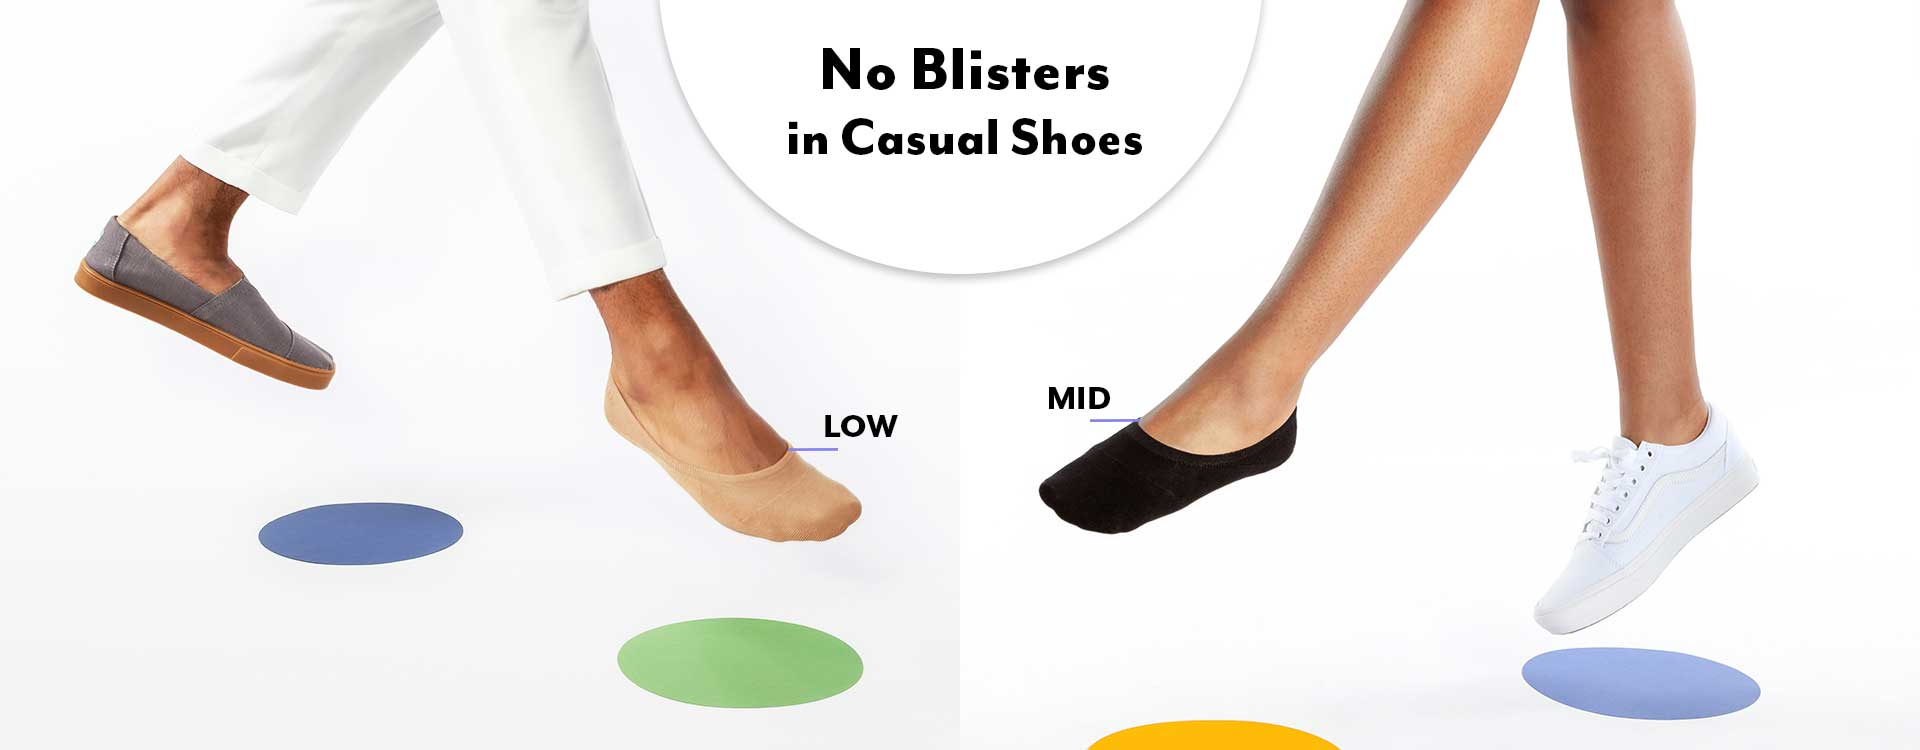 Socks for Casual Shoes